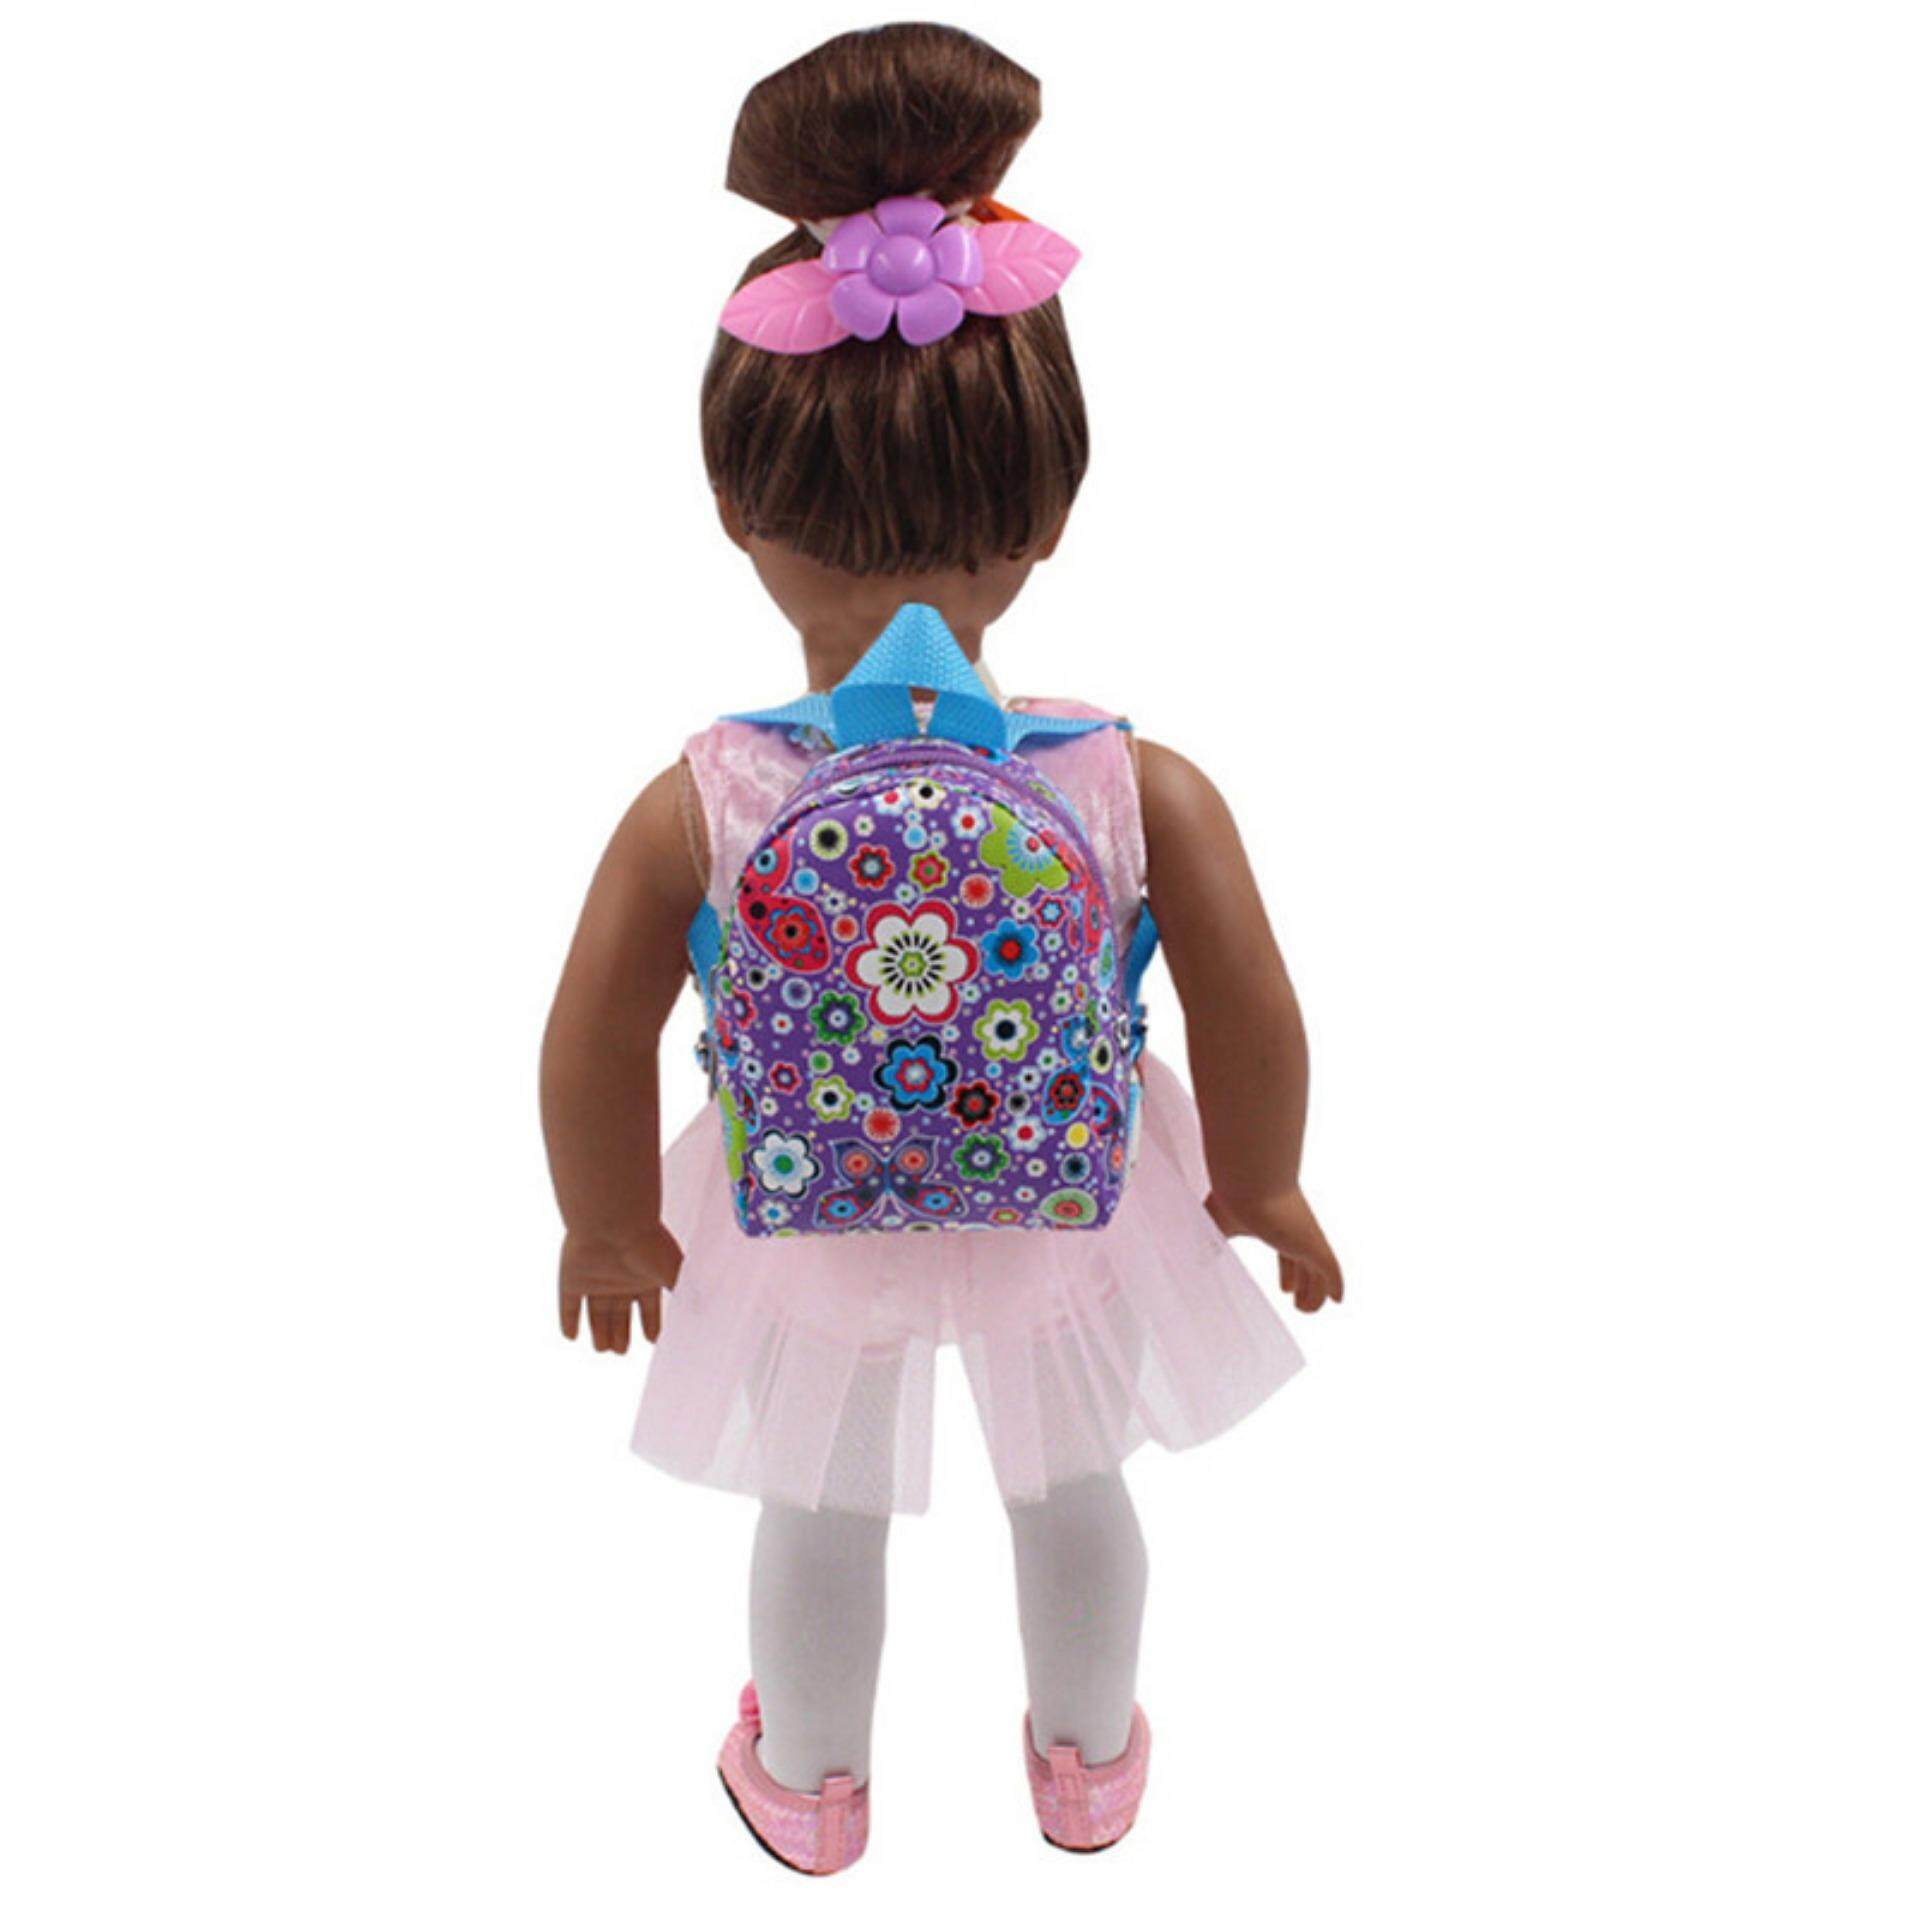 96a2063263e8 Lovely Doll Backpack School Bag For 18 Inch American Girl 43cm Zapf Baby  Dolls